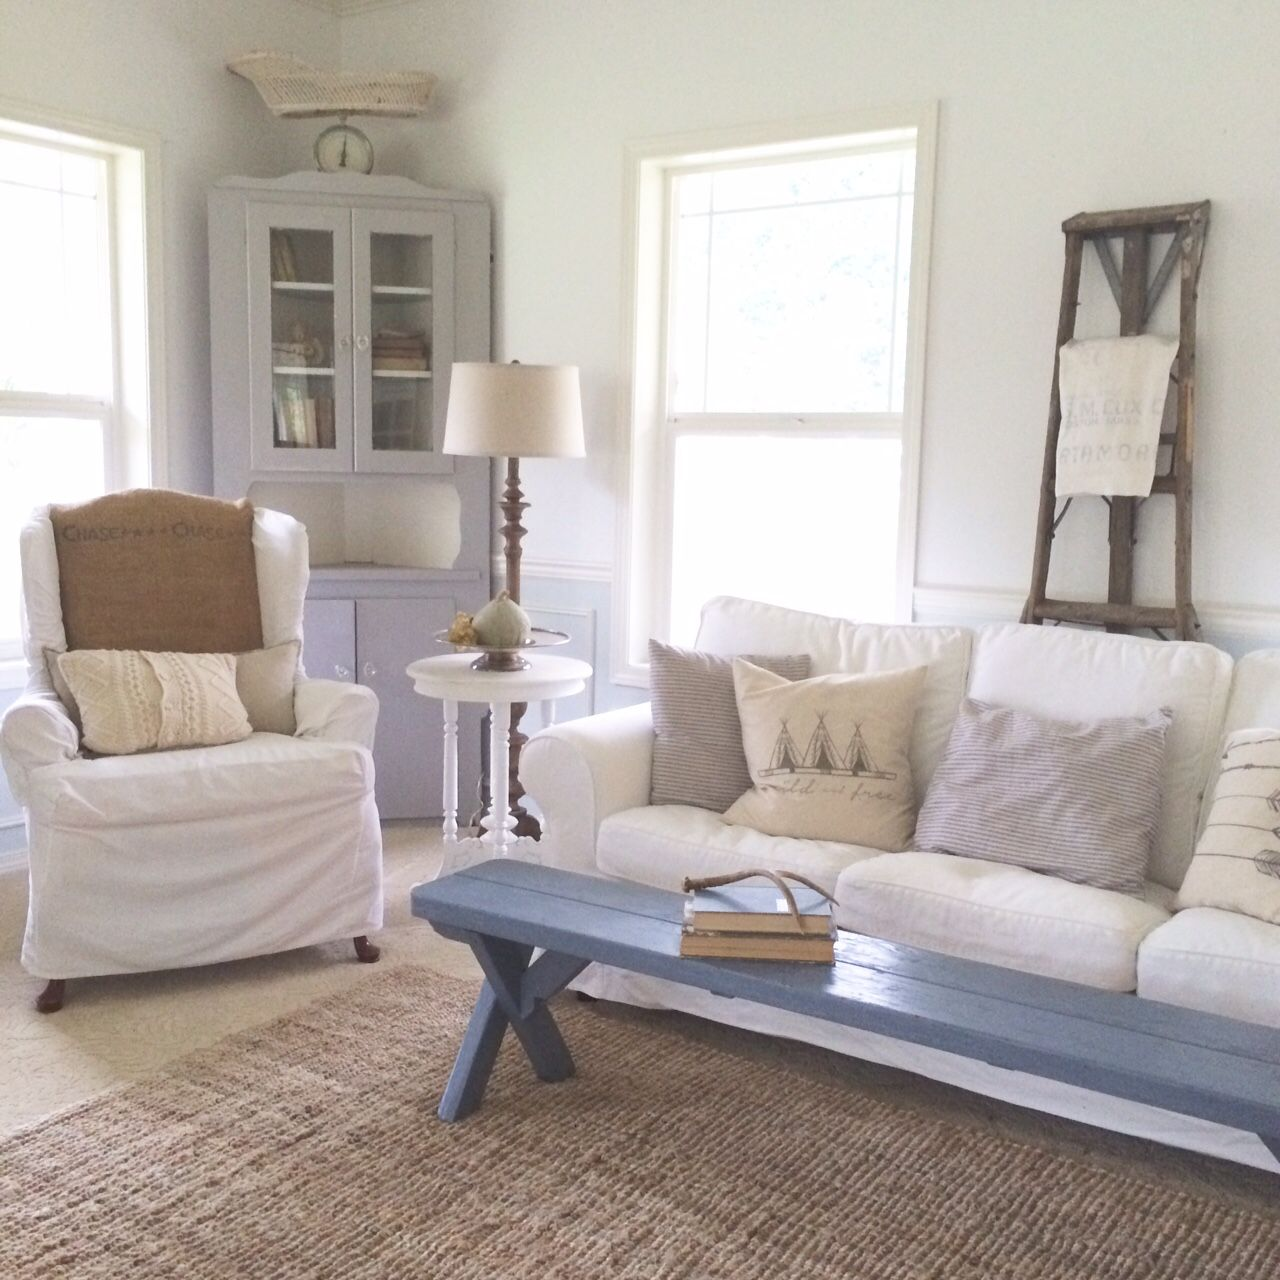 A blog about farmhouse style design, country living, home